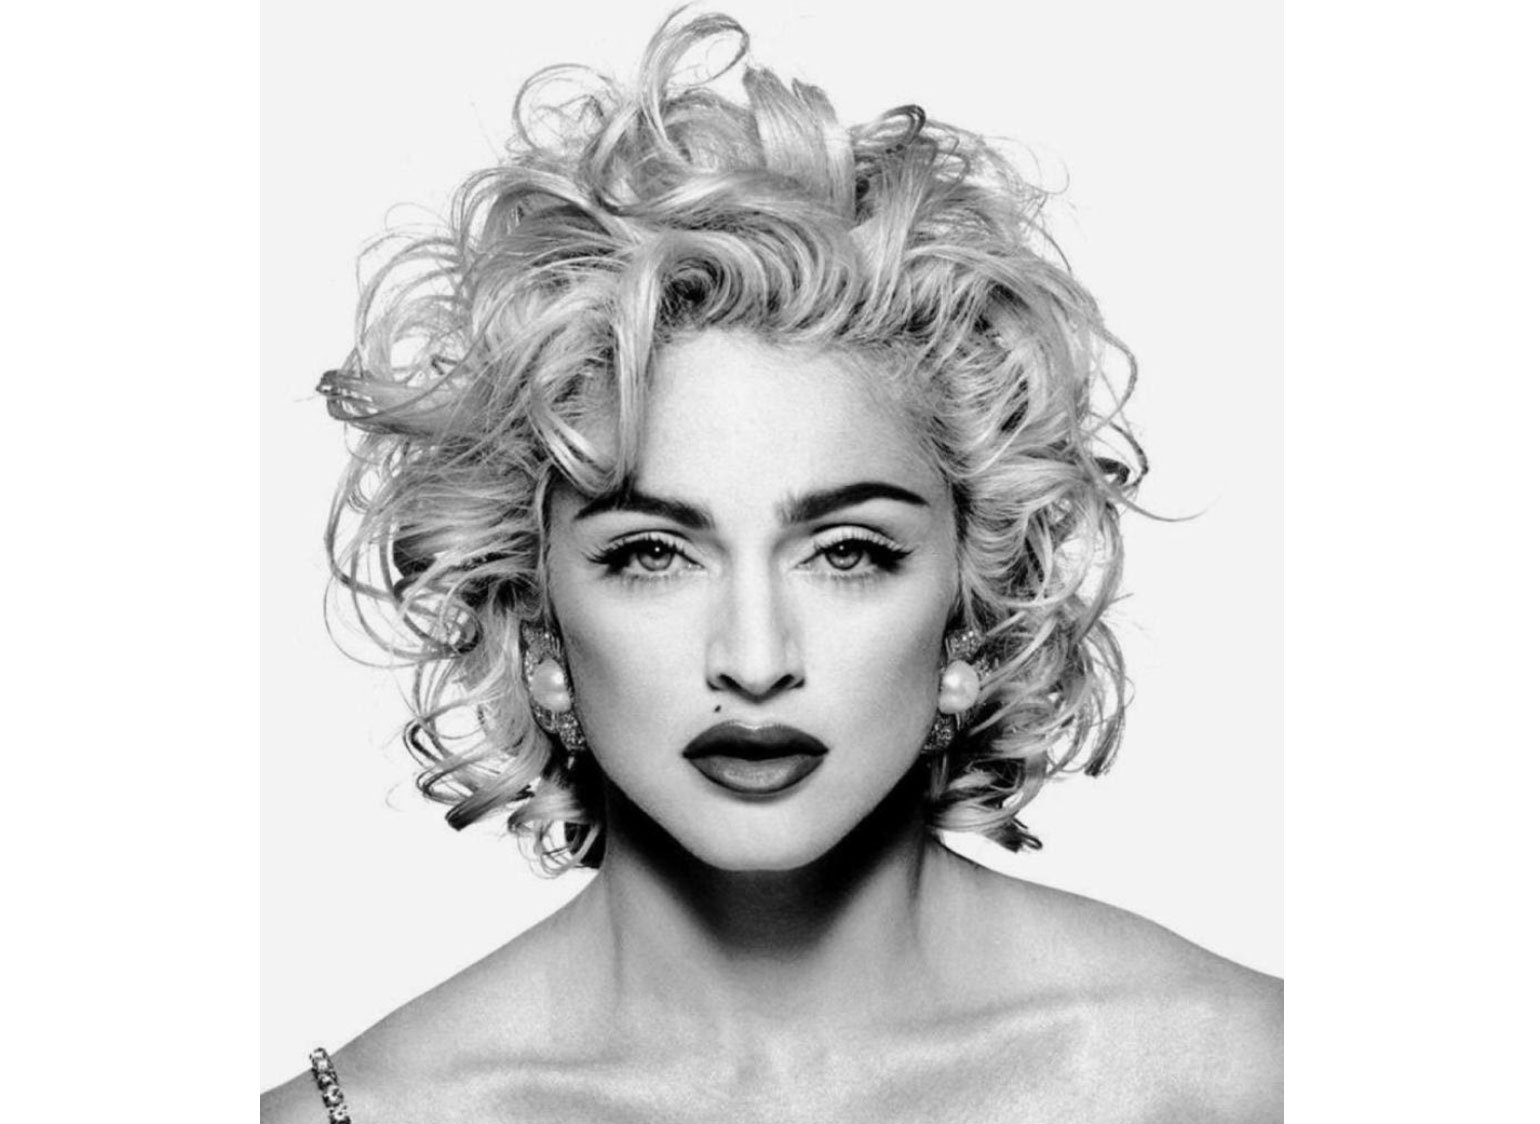 ICON OF THE MONTH - MADONNA